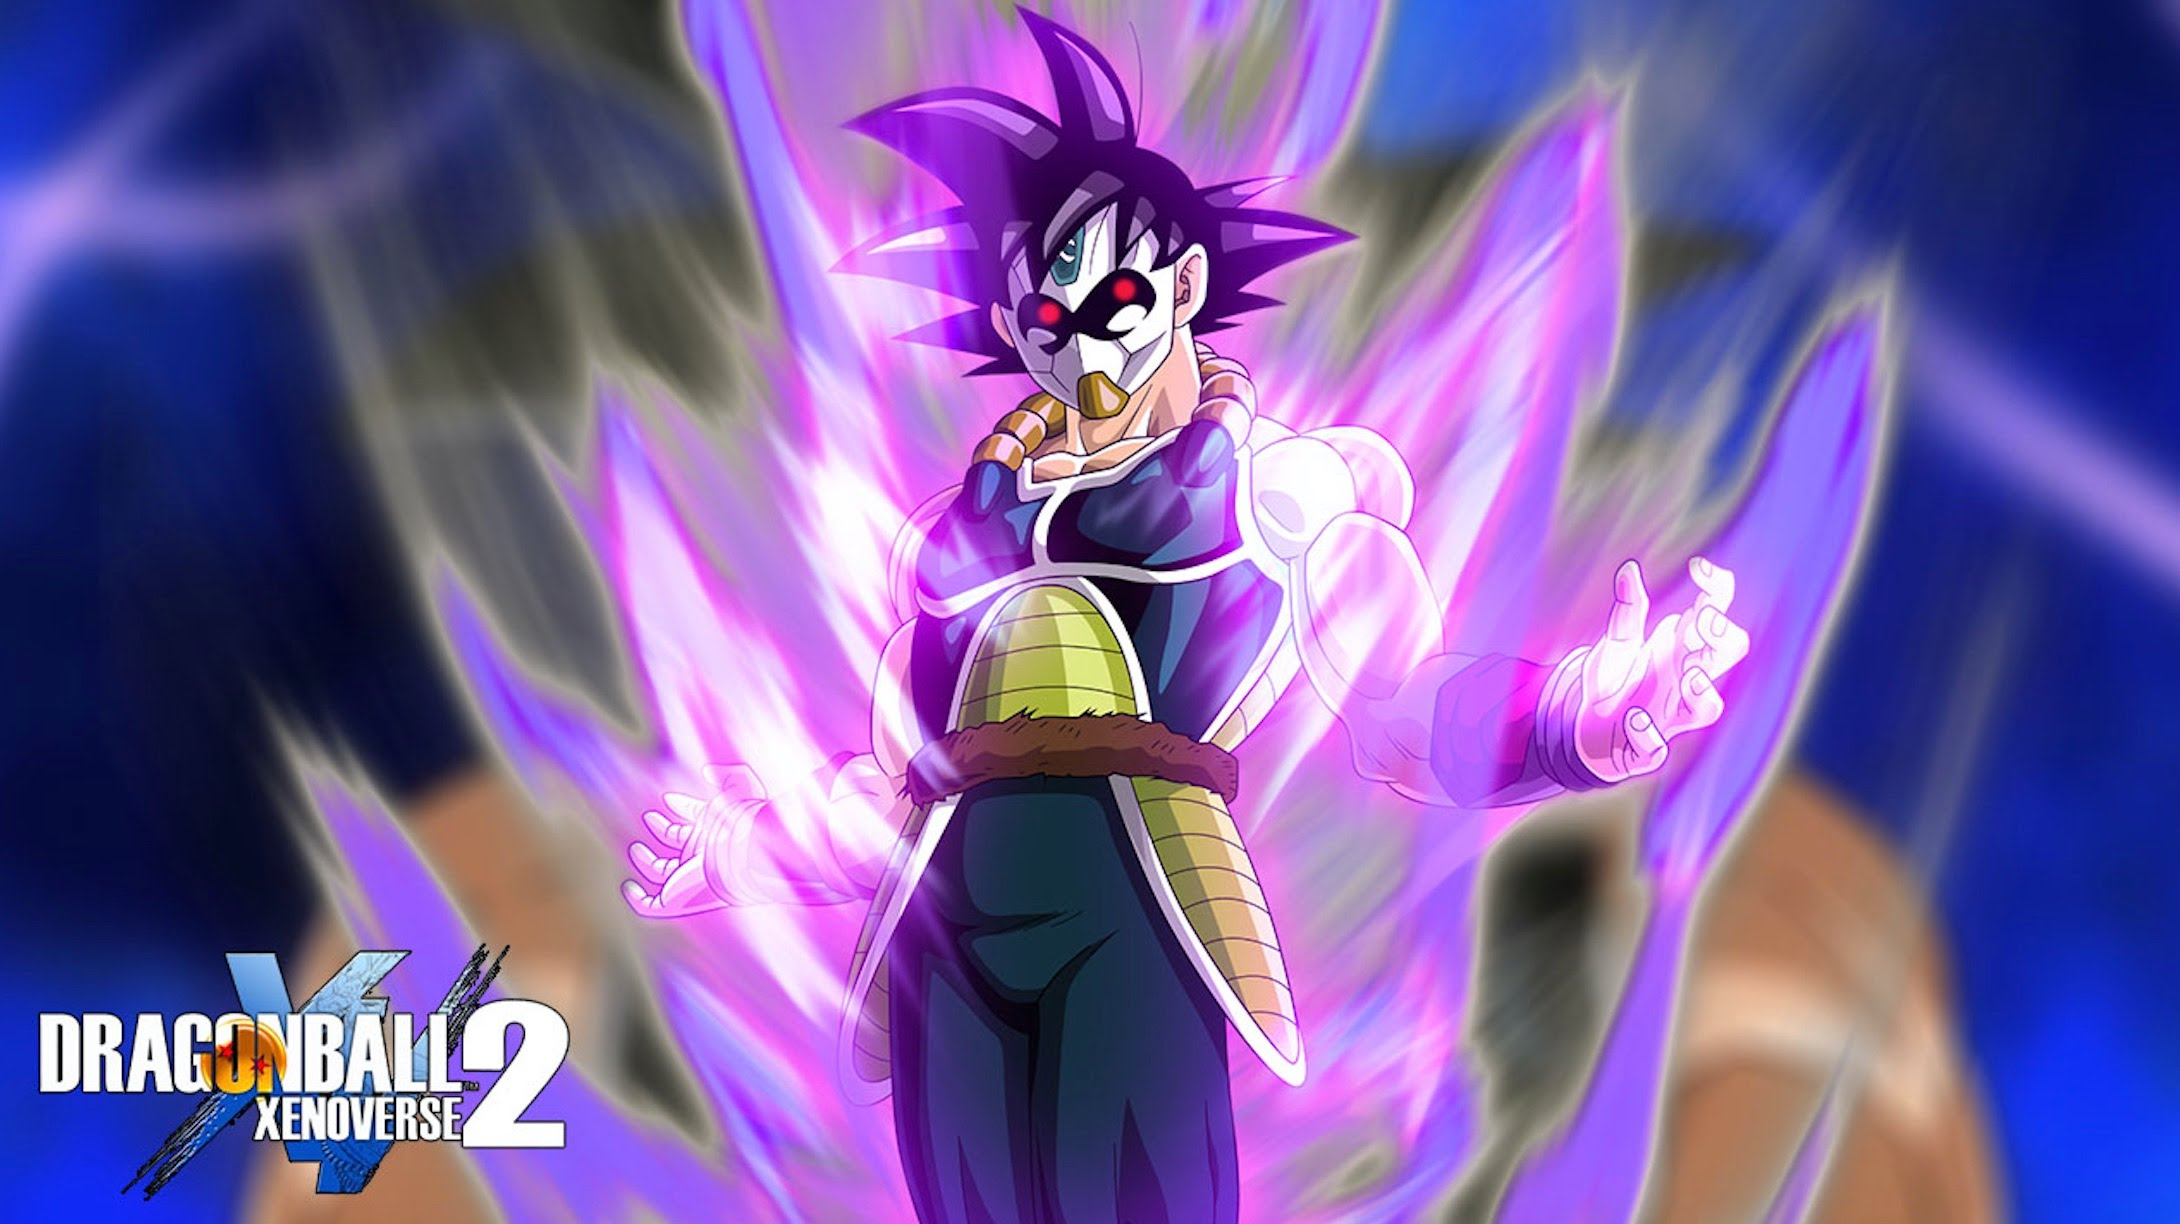 Most Viewed Dragon Ball Xenoverse 2 Wallpapers 4k Wallpapers